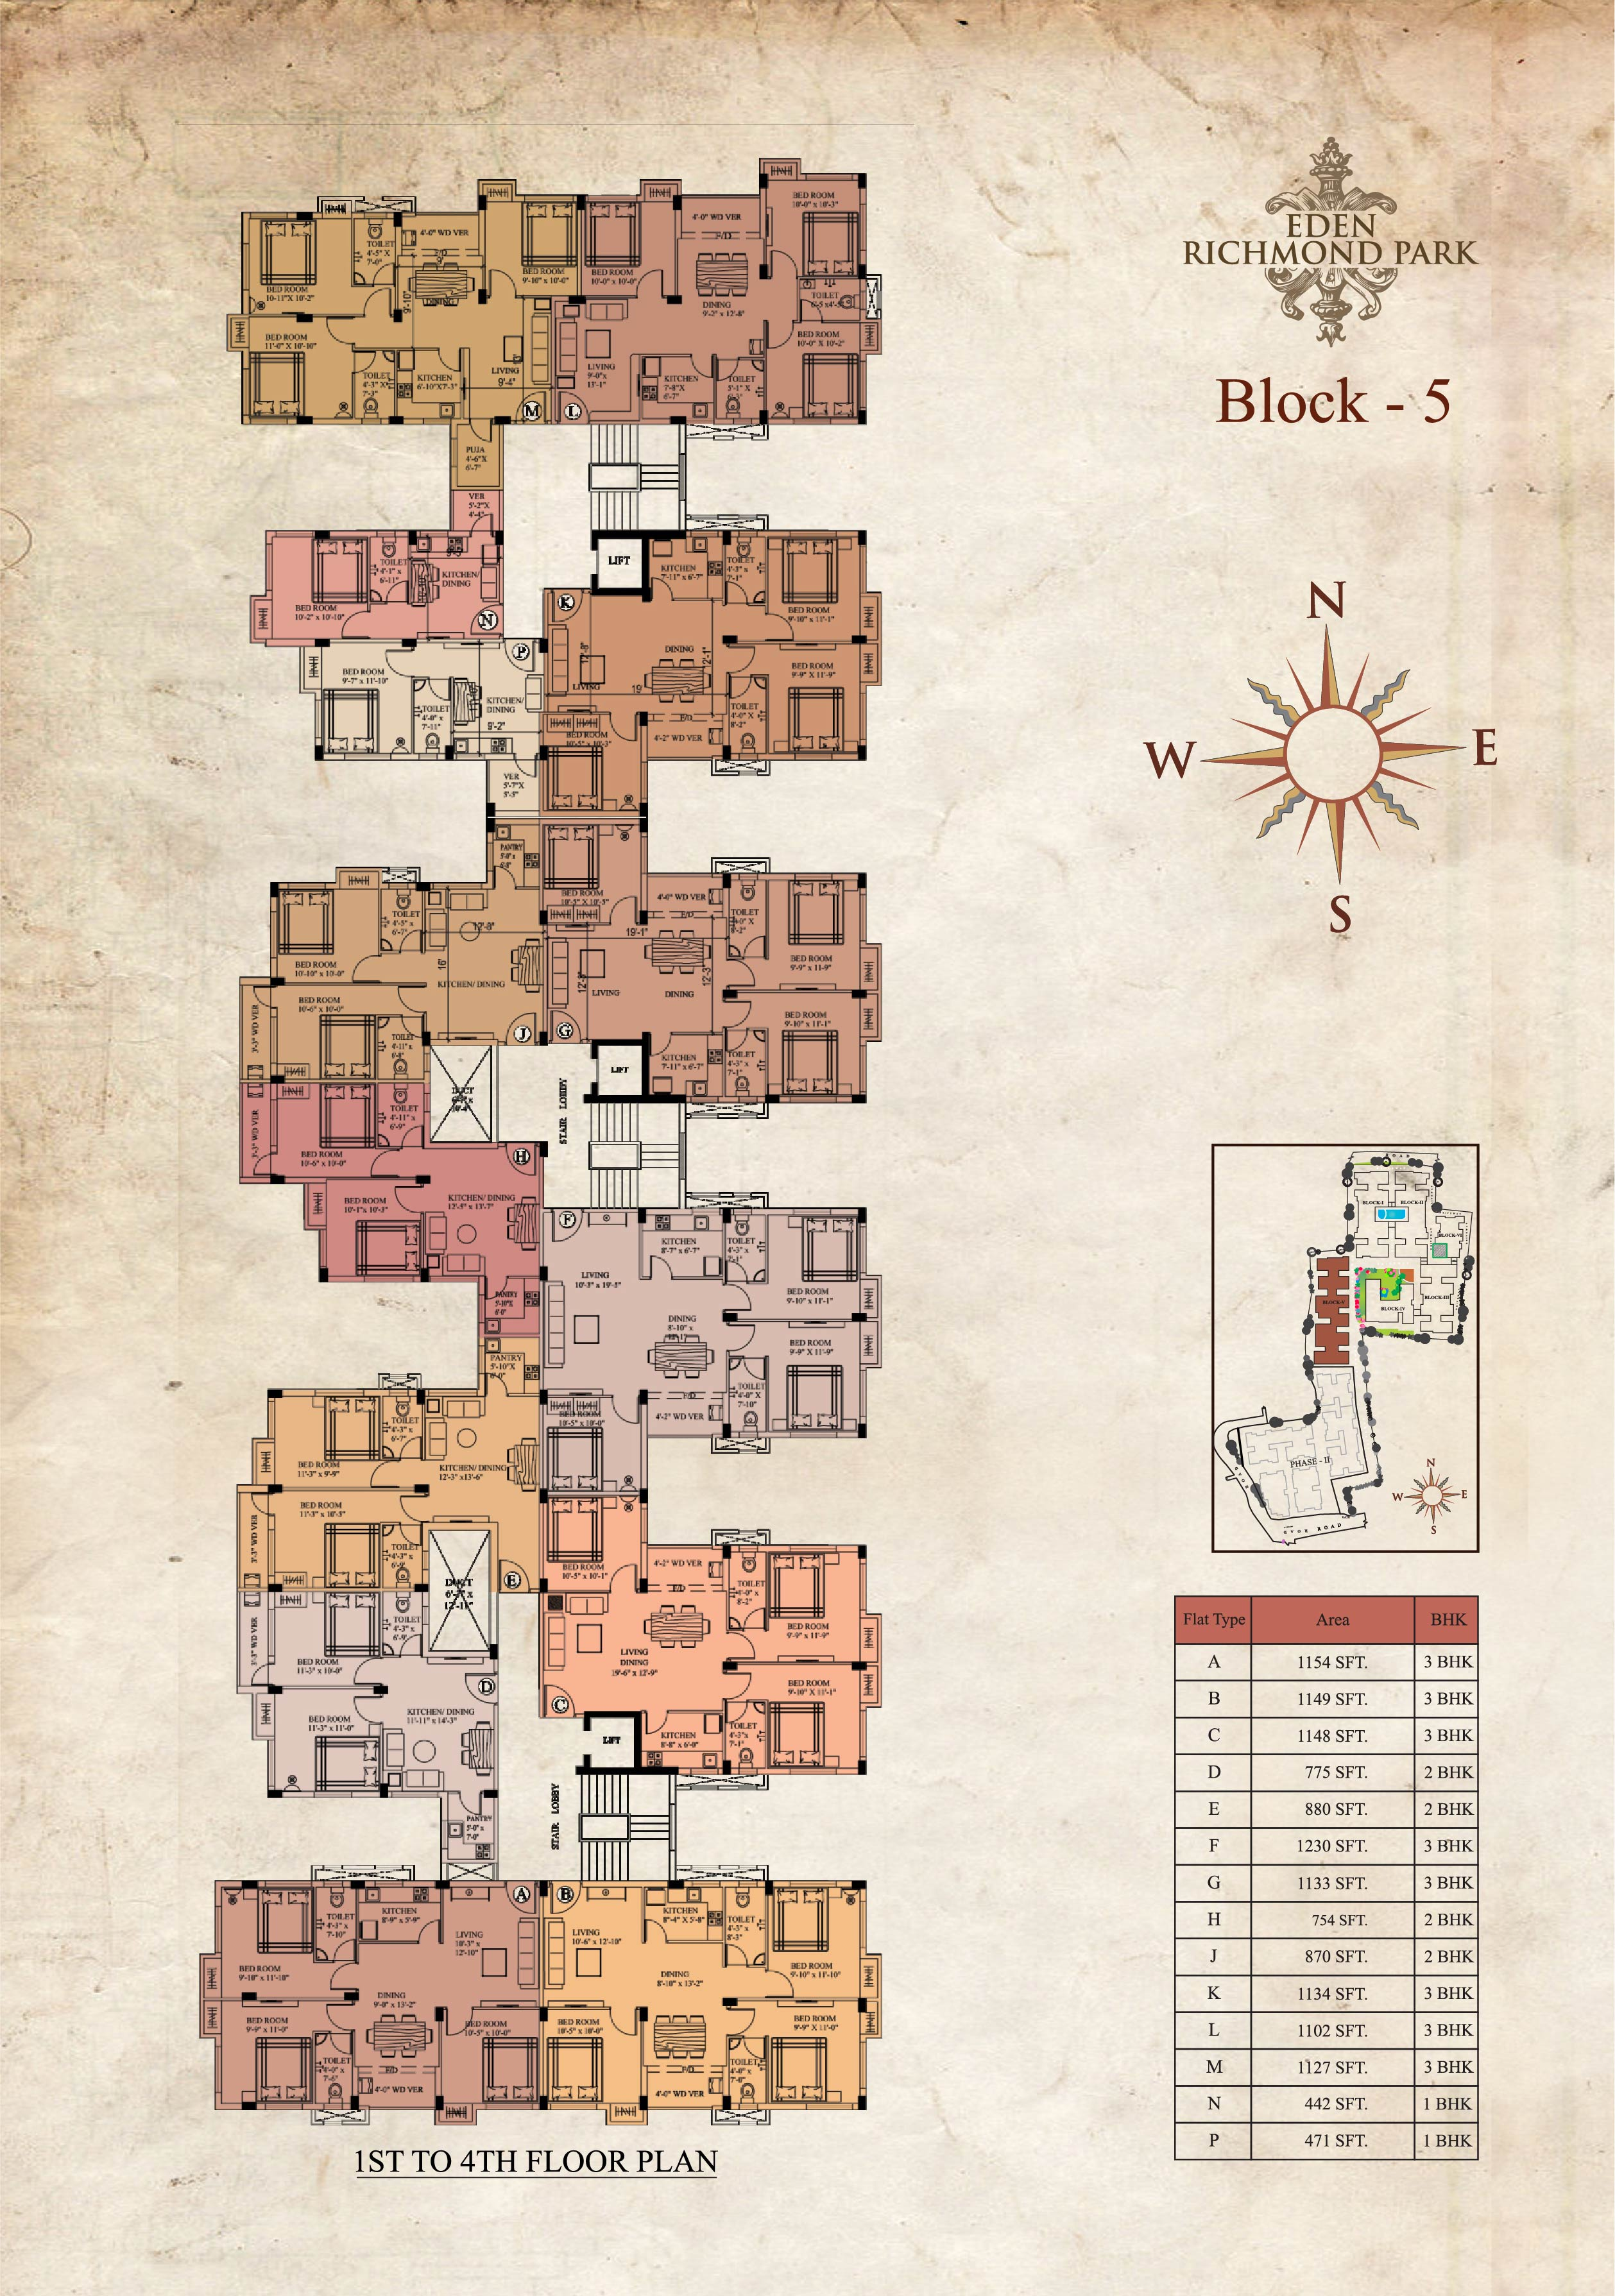 Eden Richmond Park - Block 5 1st-4th Floor Plan